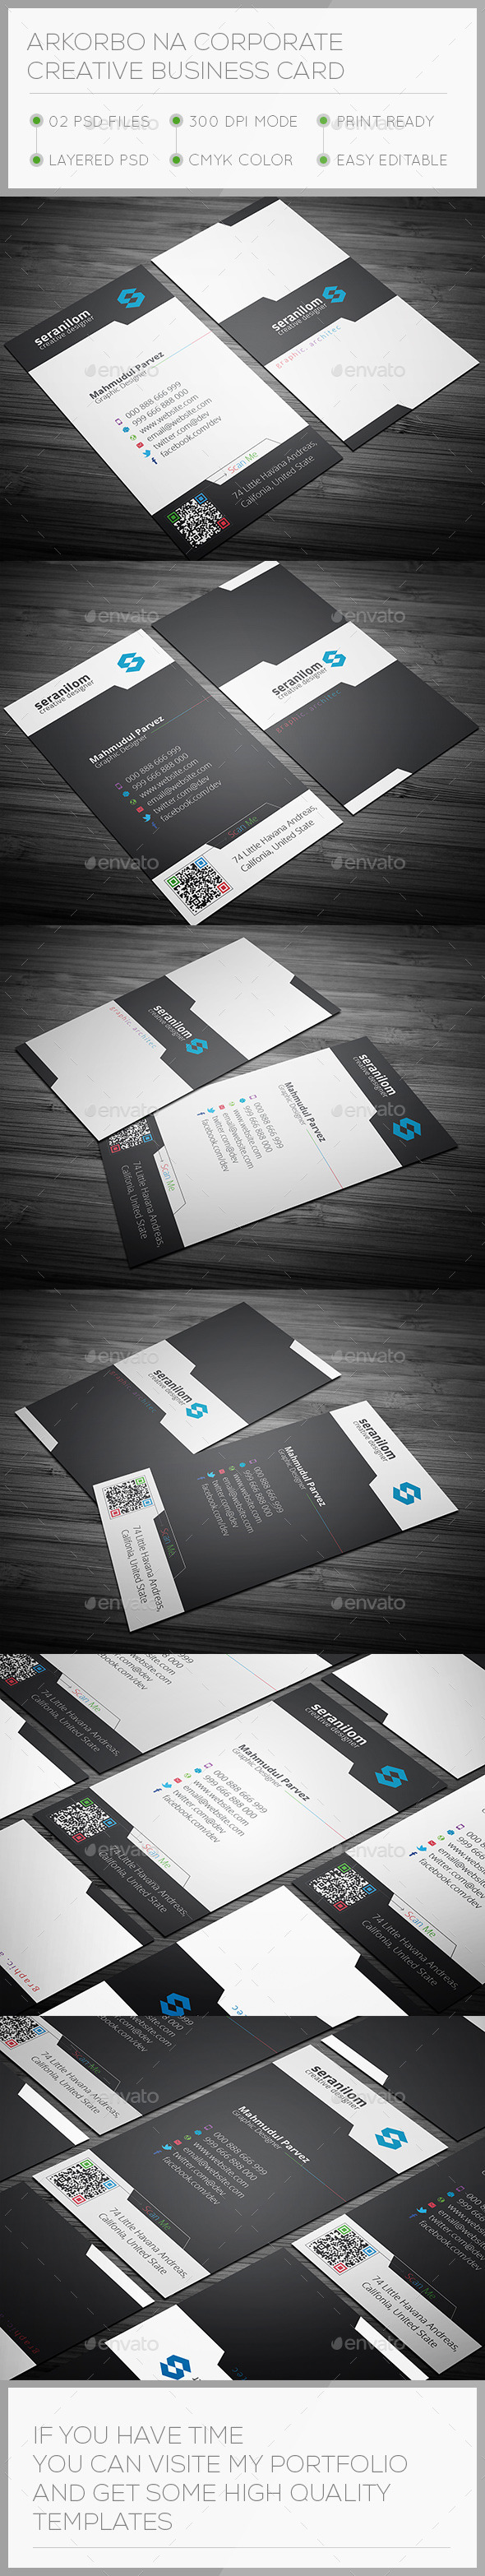 GraphicRiver Arkorbona Corporate Creative Business Card 10391579